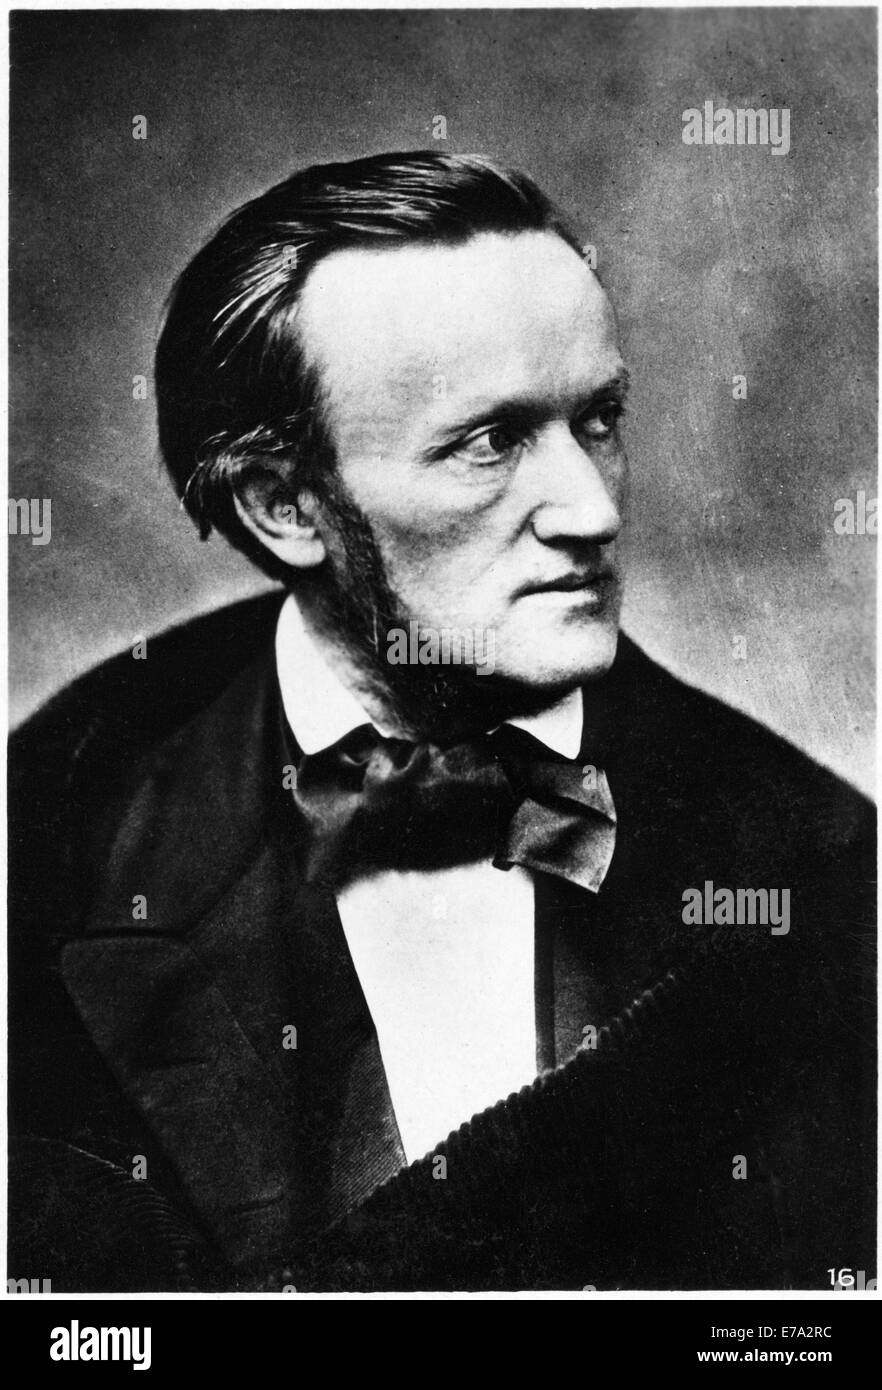 Richard Wagner (1813-1883), German Opera Composer, Portrait, circa 1860's - Stock Image